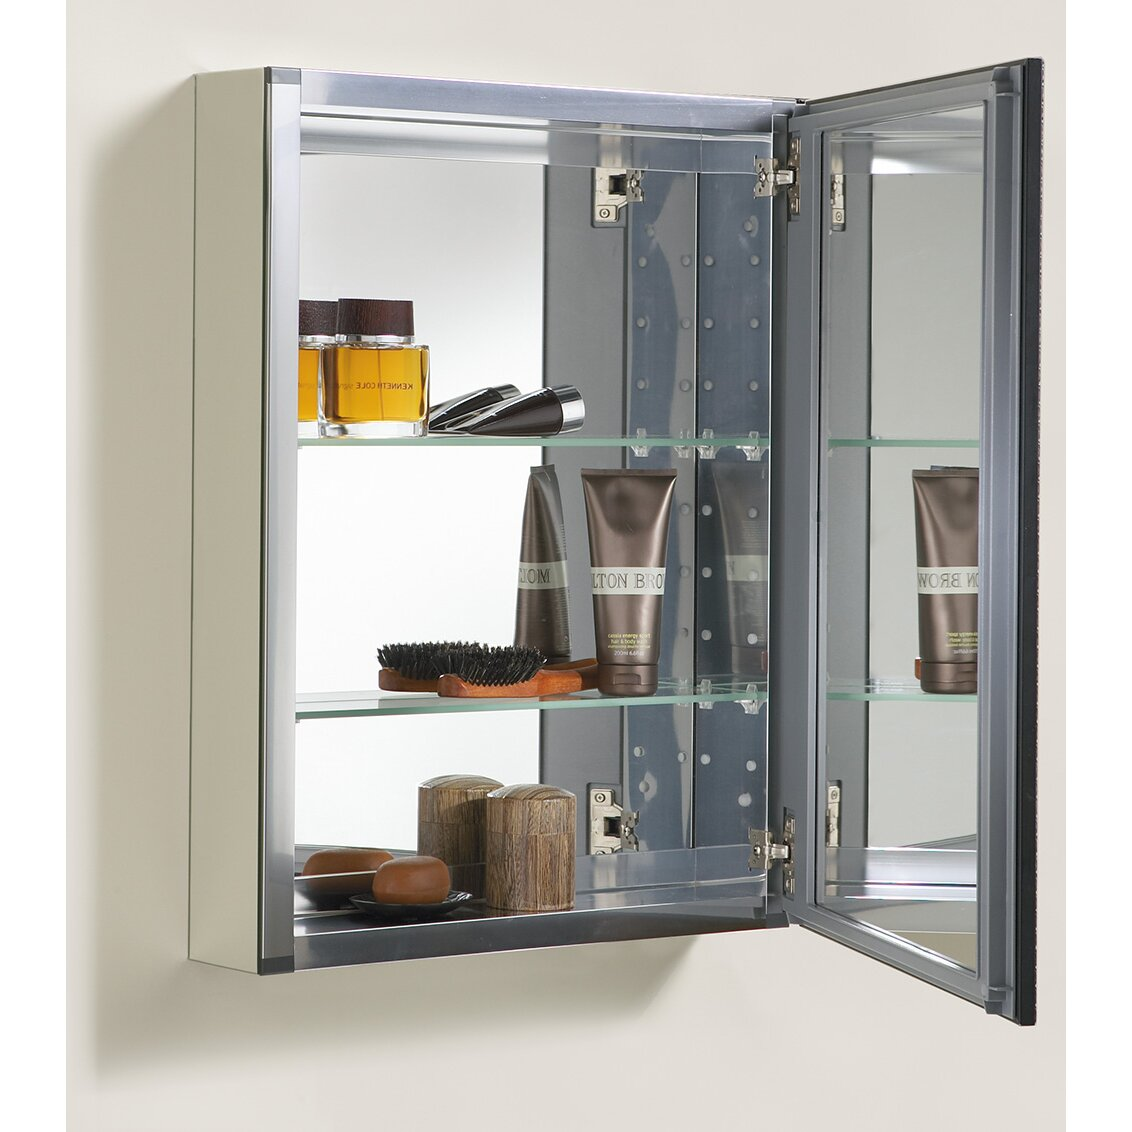 Kohler 20 x 26 wall mount mirrored medicine cabinet with Wall mounted medicine cabinet